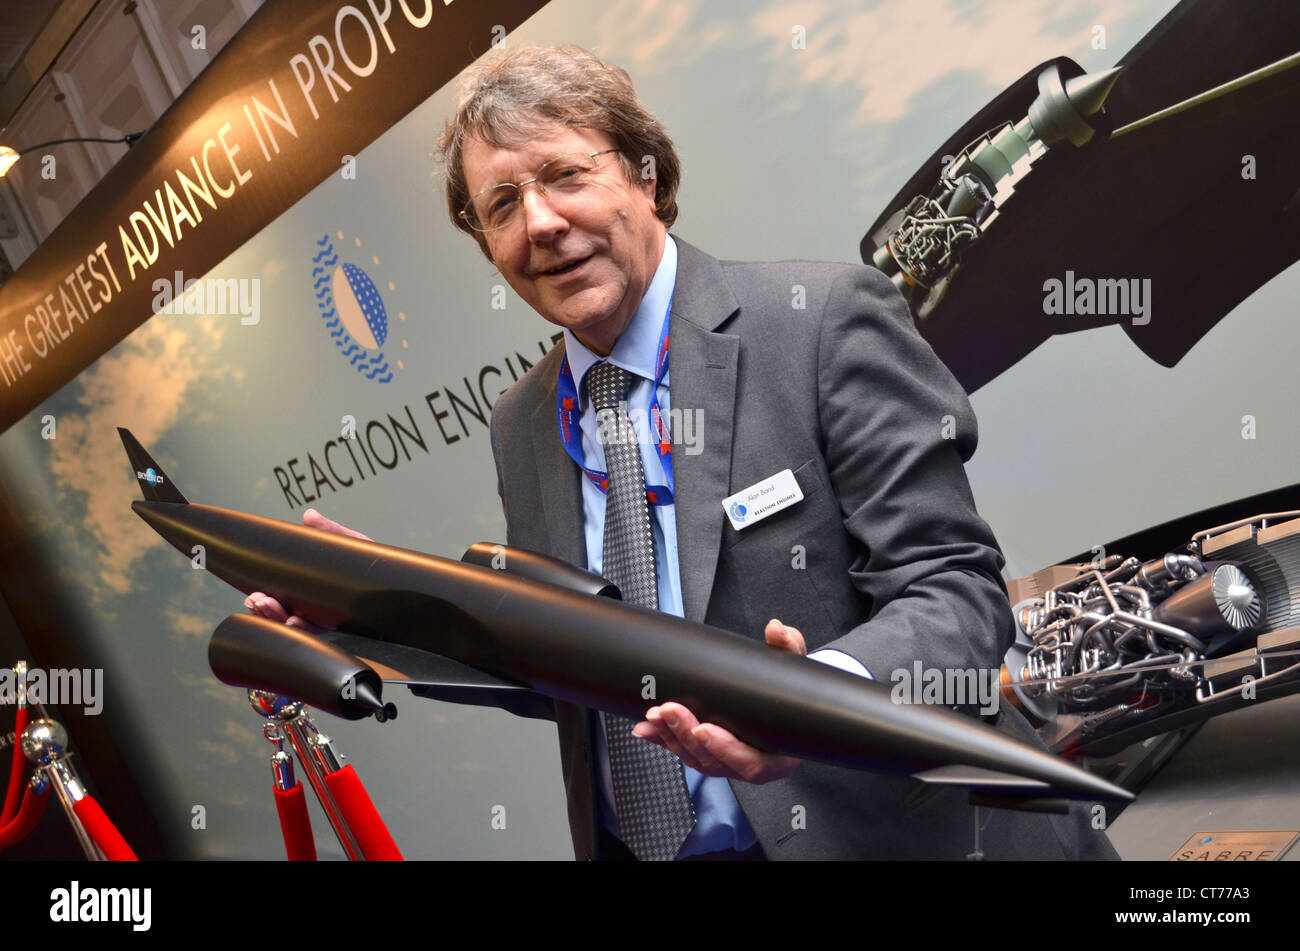 Alan Bond, Reaction Engines Limited with a model of the Skylon space plane. - Stock Image